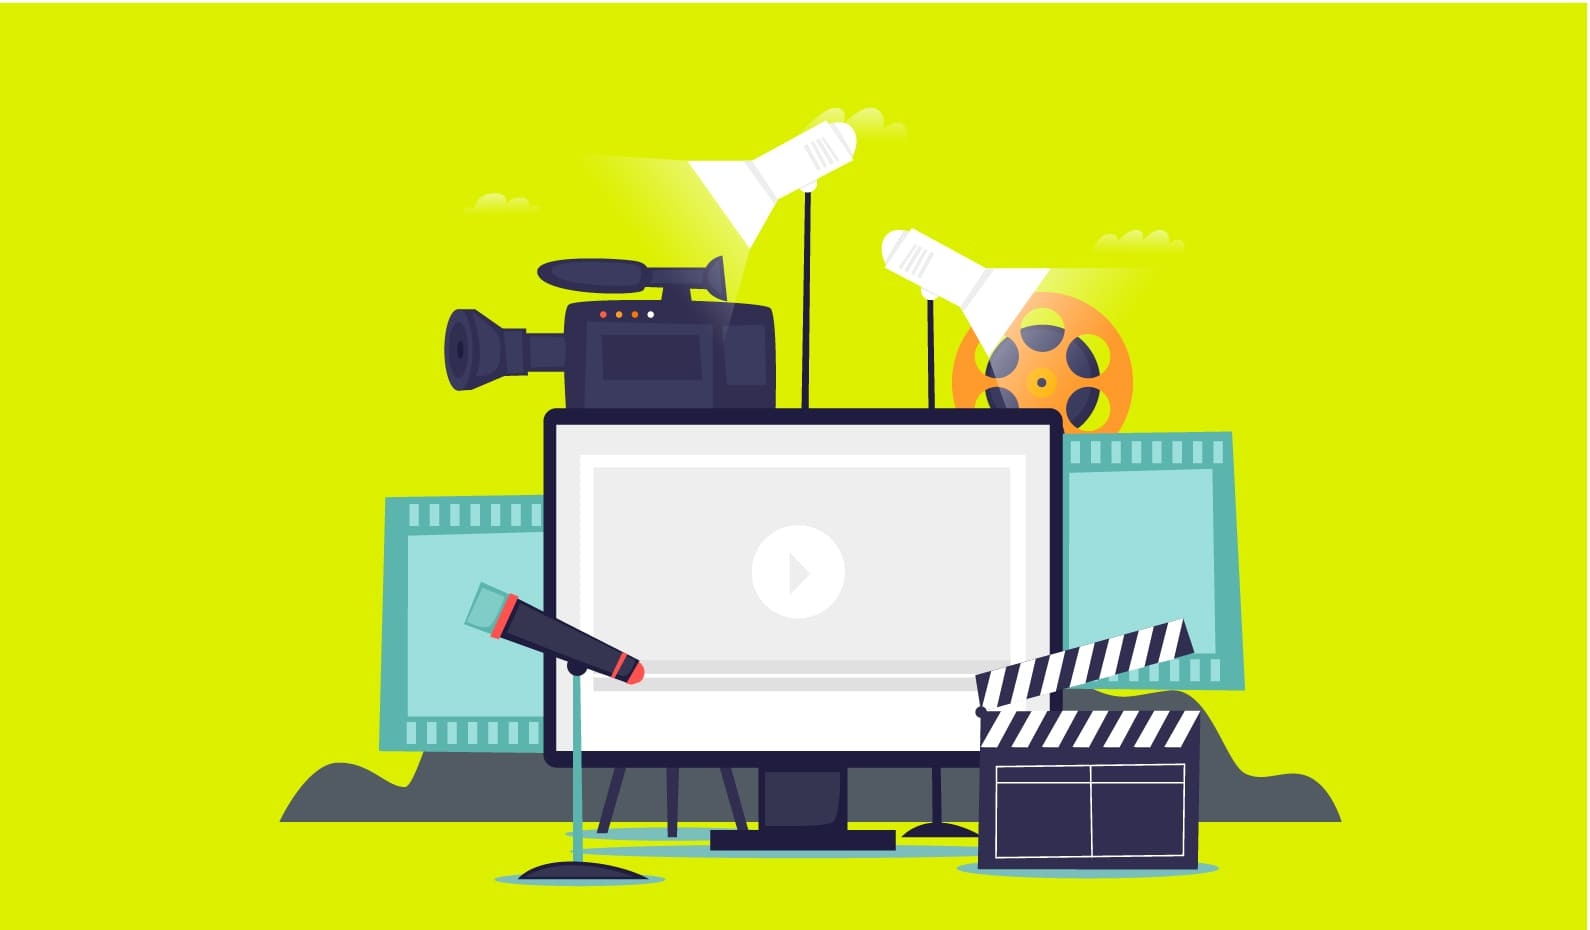 The Video Production Company Guide yellow screen